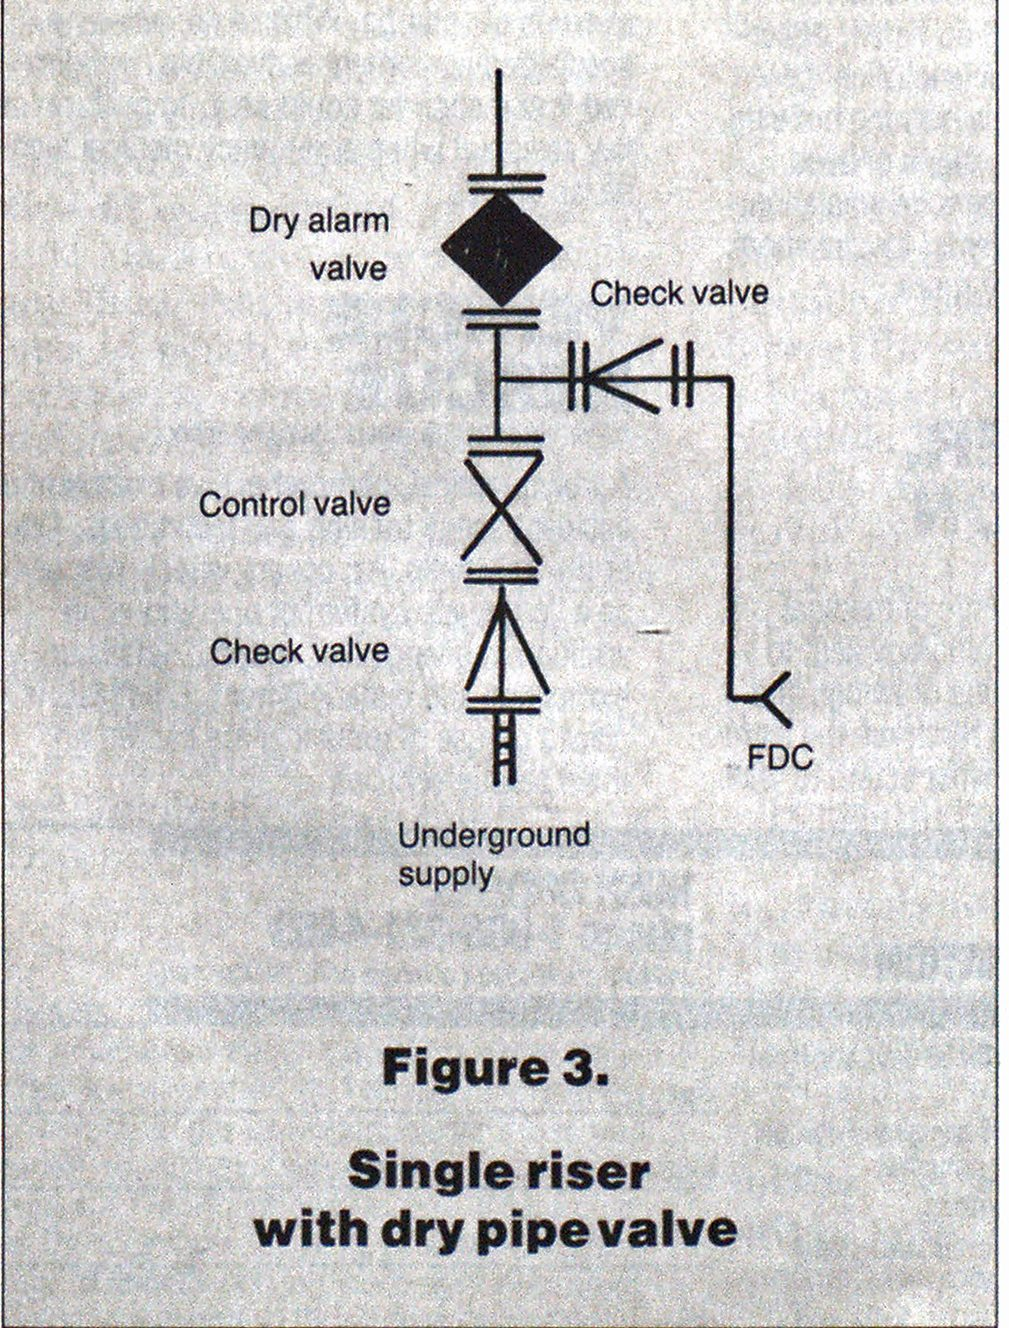 Figure 3. Single riser with dry pipe valve